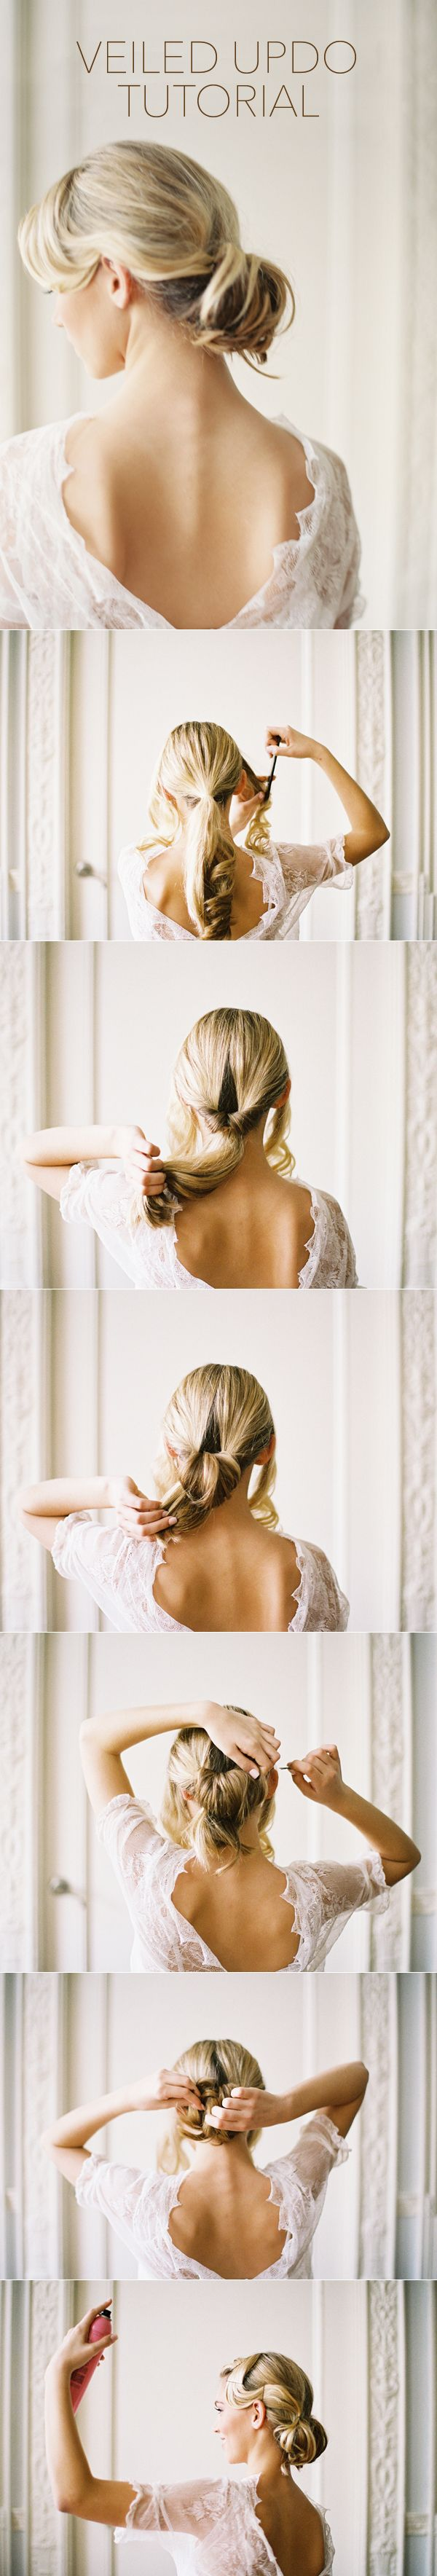 Wedding Hairstyles with Drop Veil Tutorial - Photography: Rylee Hitchner // Location: Callanwolde // Hair + makeup: Amanda Paige // Styling: Joy Thigpen // Vintage dress and veil: Cheryl Taylor - via oncewed